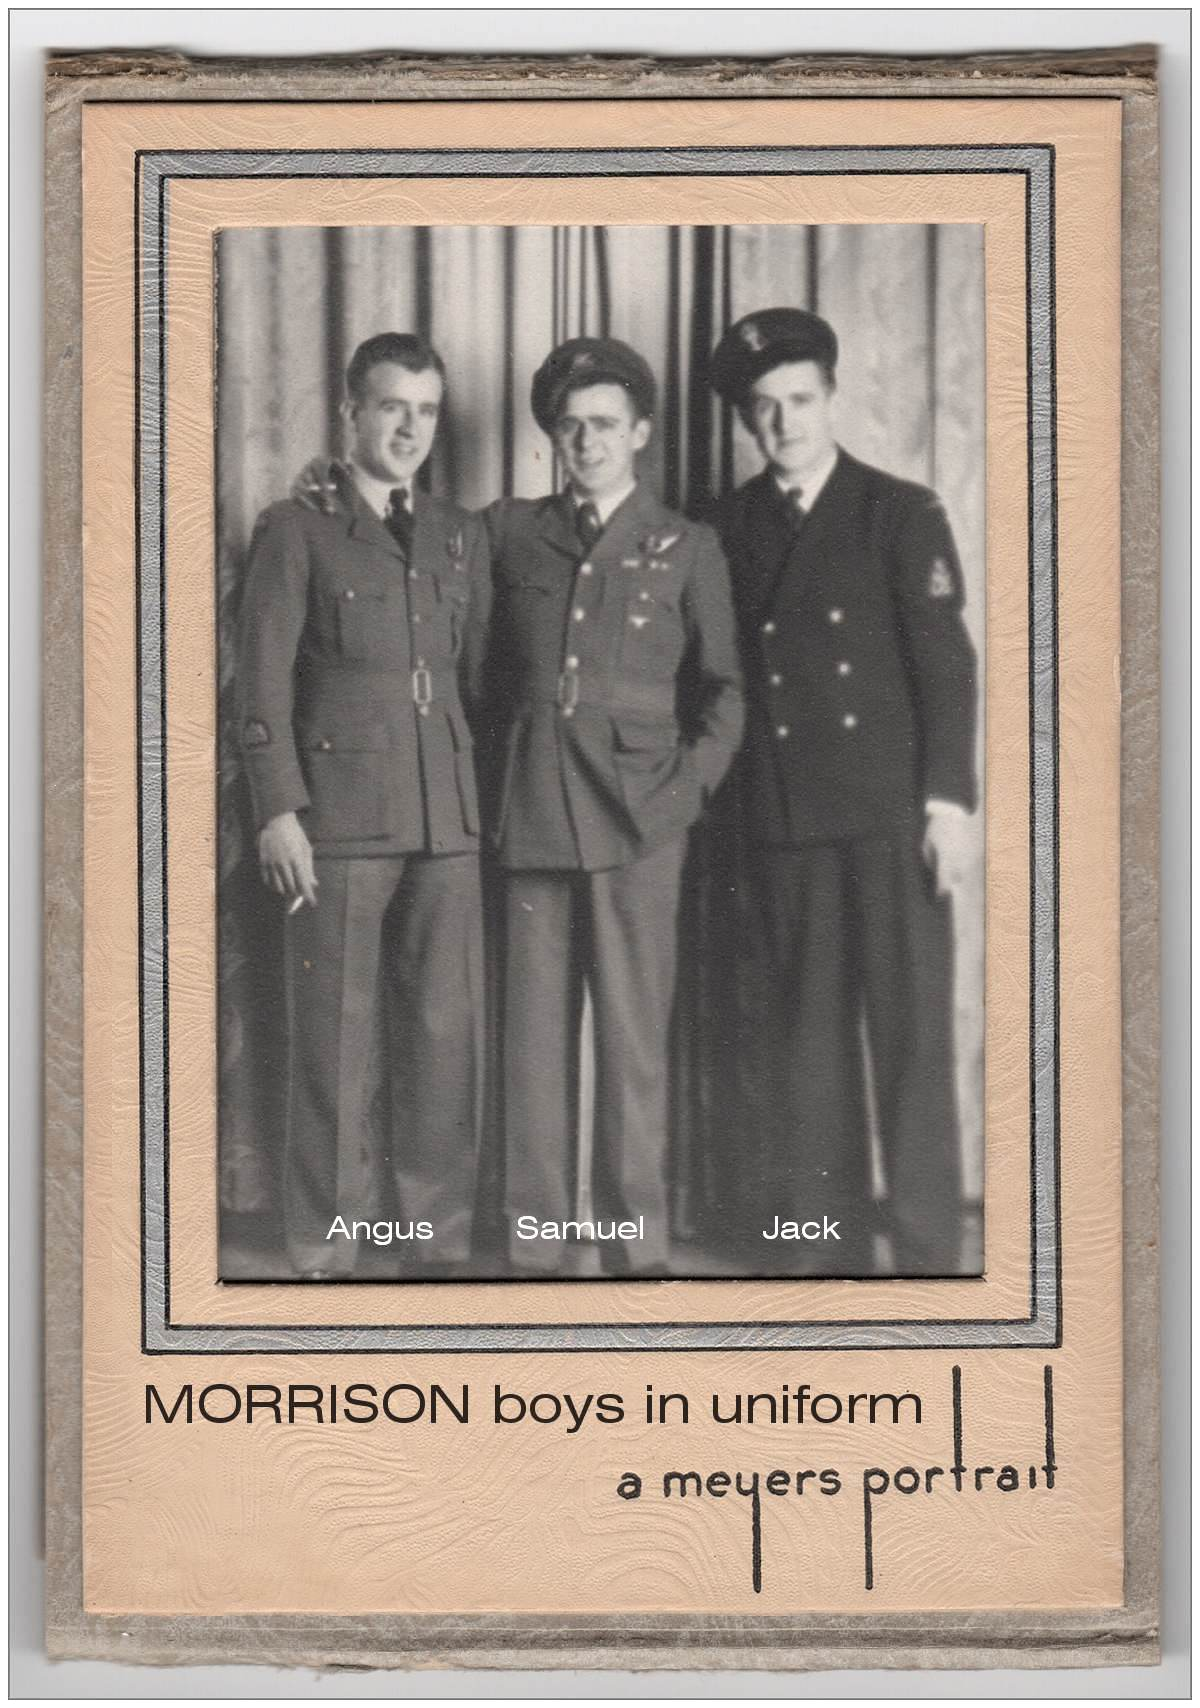 Morrison boys in uniform - photo 001